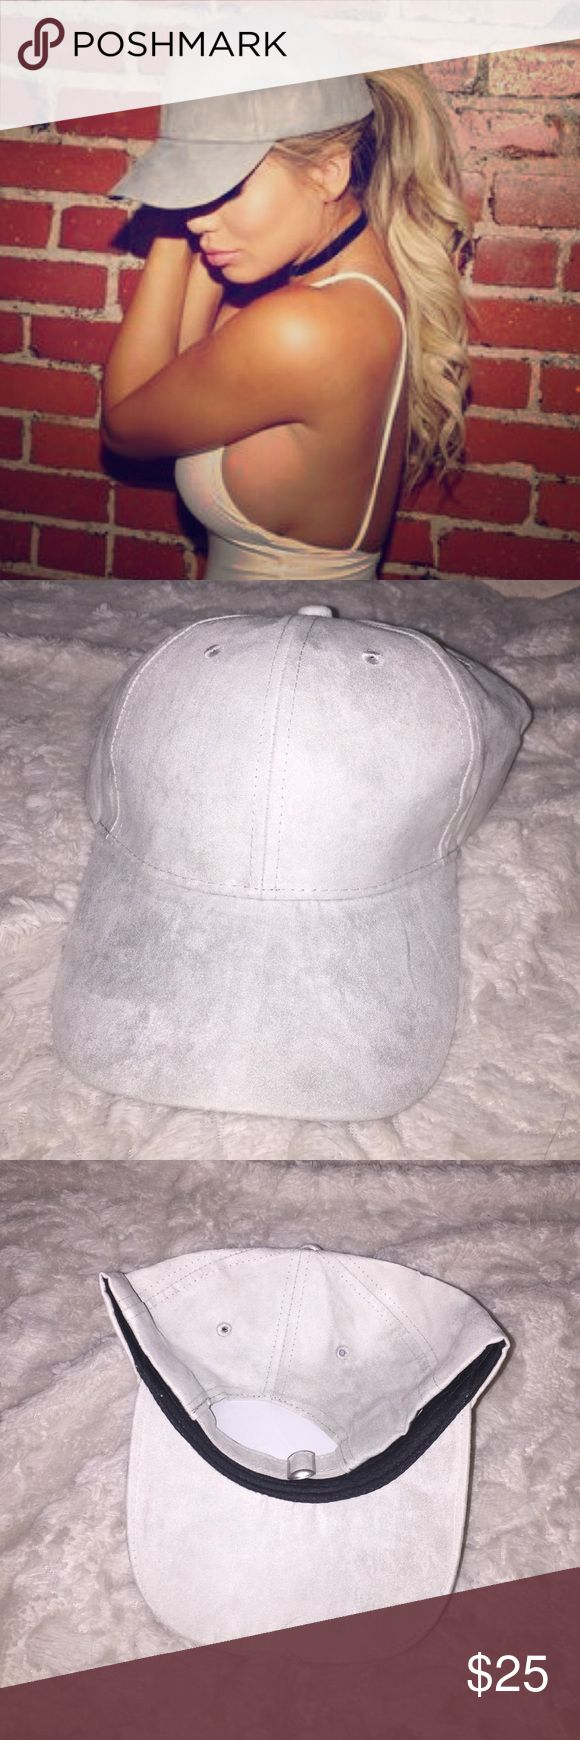 ✨NWOT✨ Faux Suede Light Grey Cap Faux suede grey colored cap. Classic baseball cap with a soft faux suede texture. Adjustable buckle in back. One size fits all. Available in Light grey color. Brand listed for exposure. NWOT 👈🏽  100% Cotton, Made in China Zara Accessories Hats